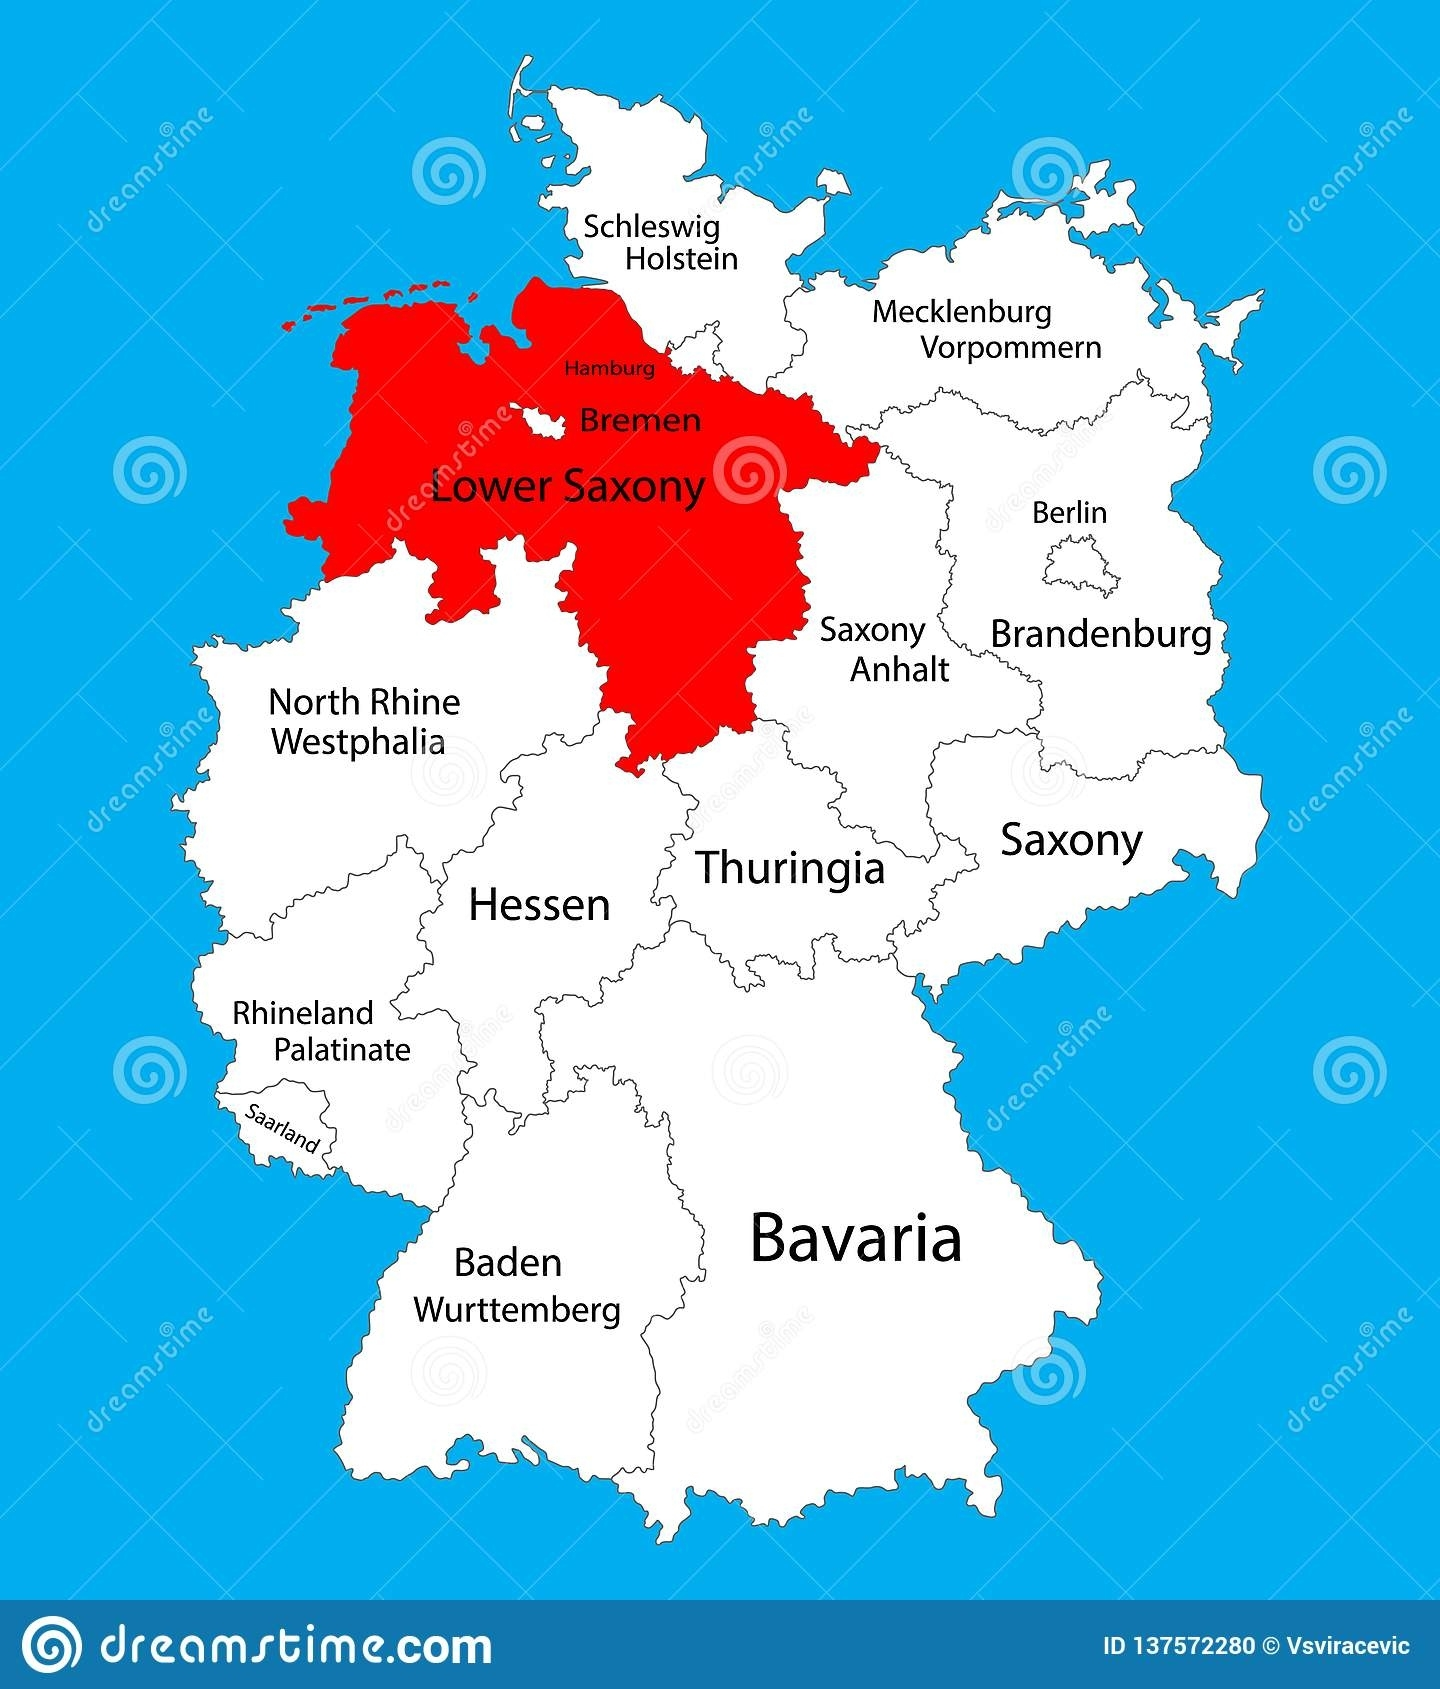 Niedersachsen, Lower Saxony State Map, Germany, Vector Map inside Hannover Germany Map